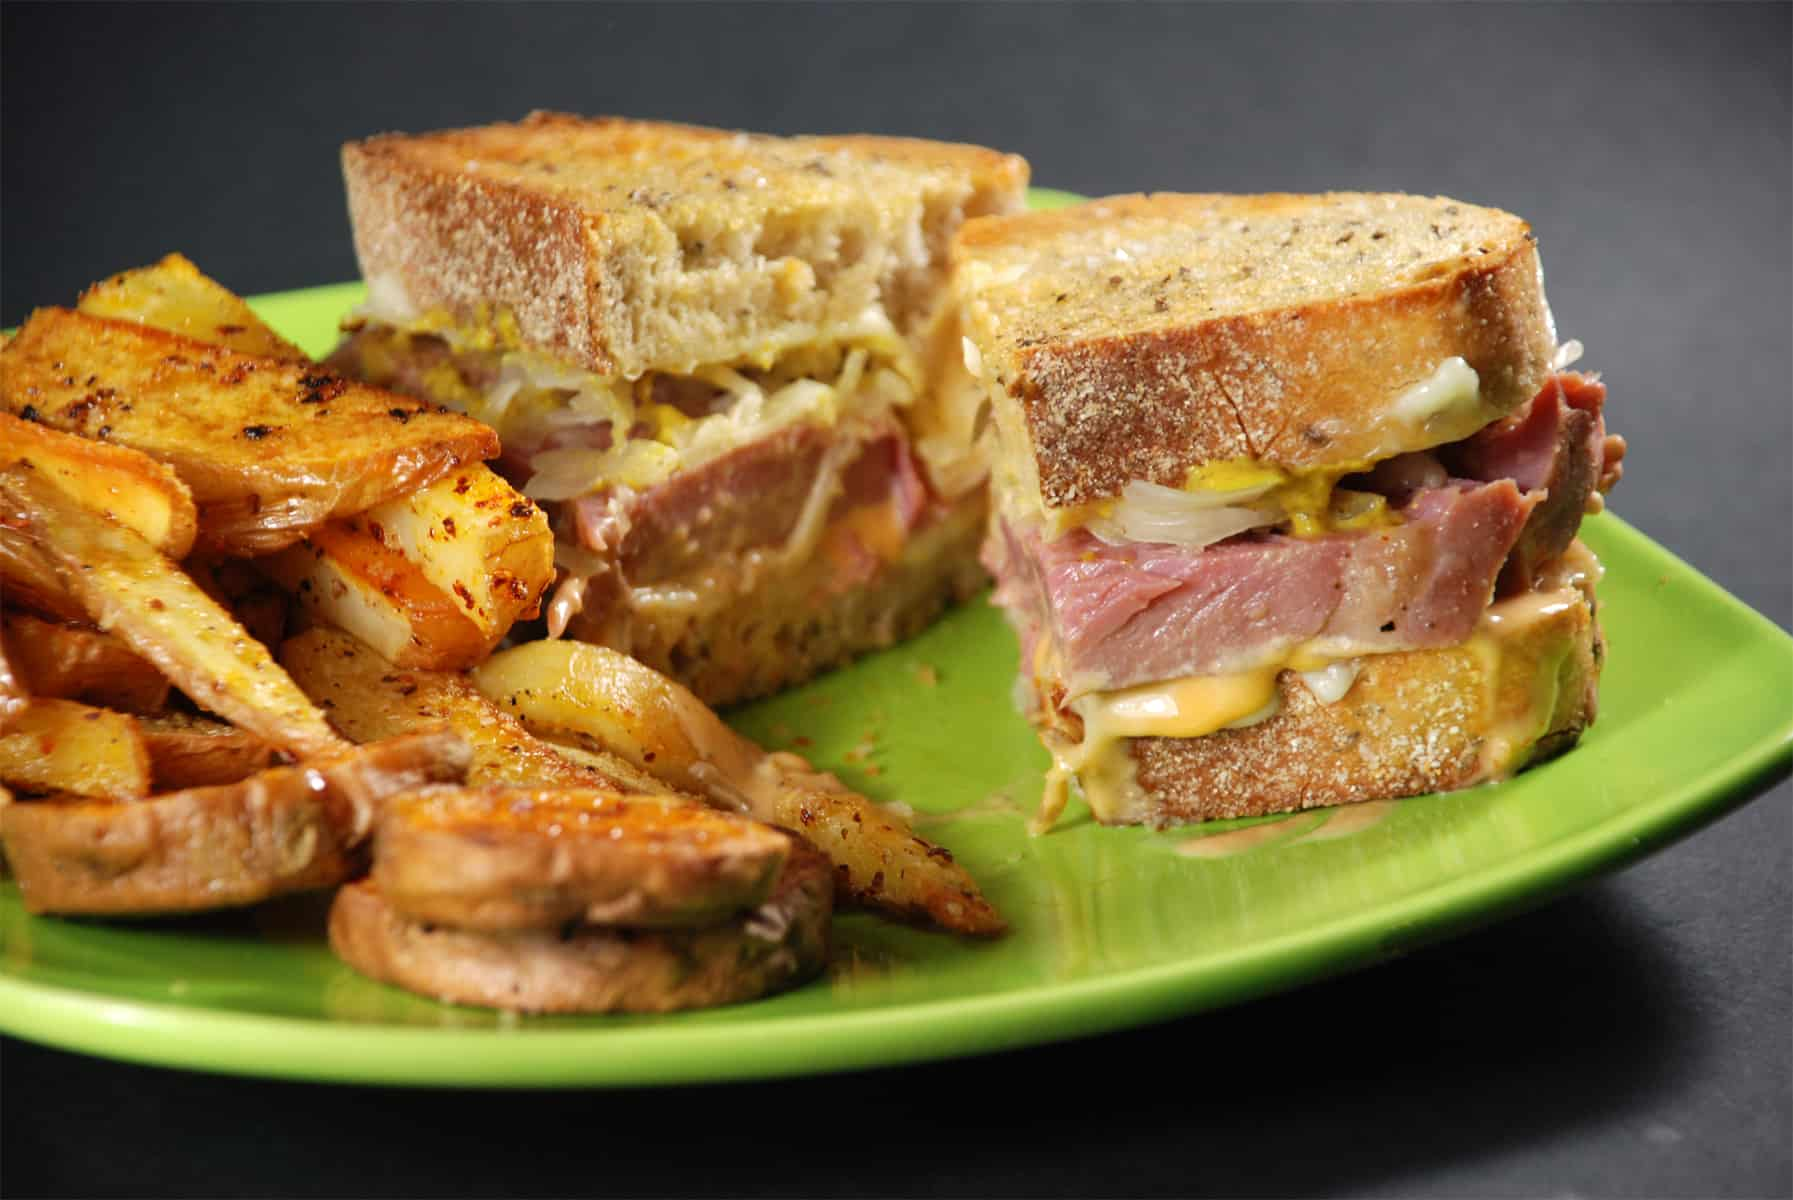 Sandwiches image link